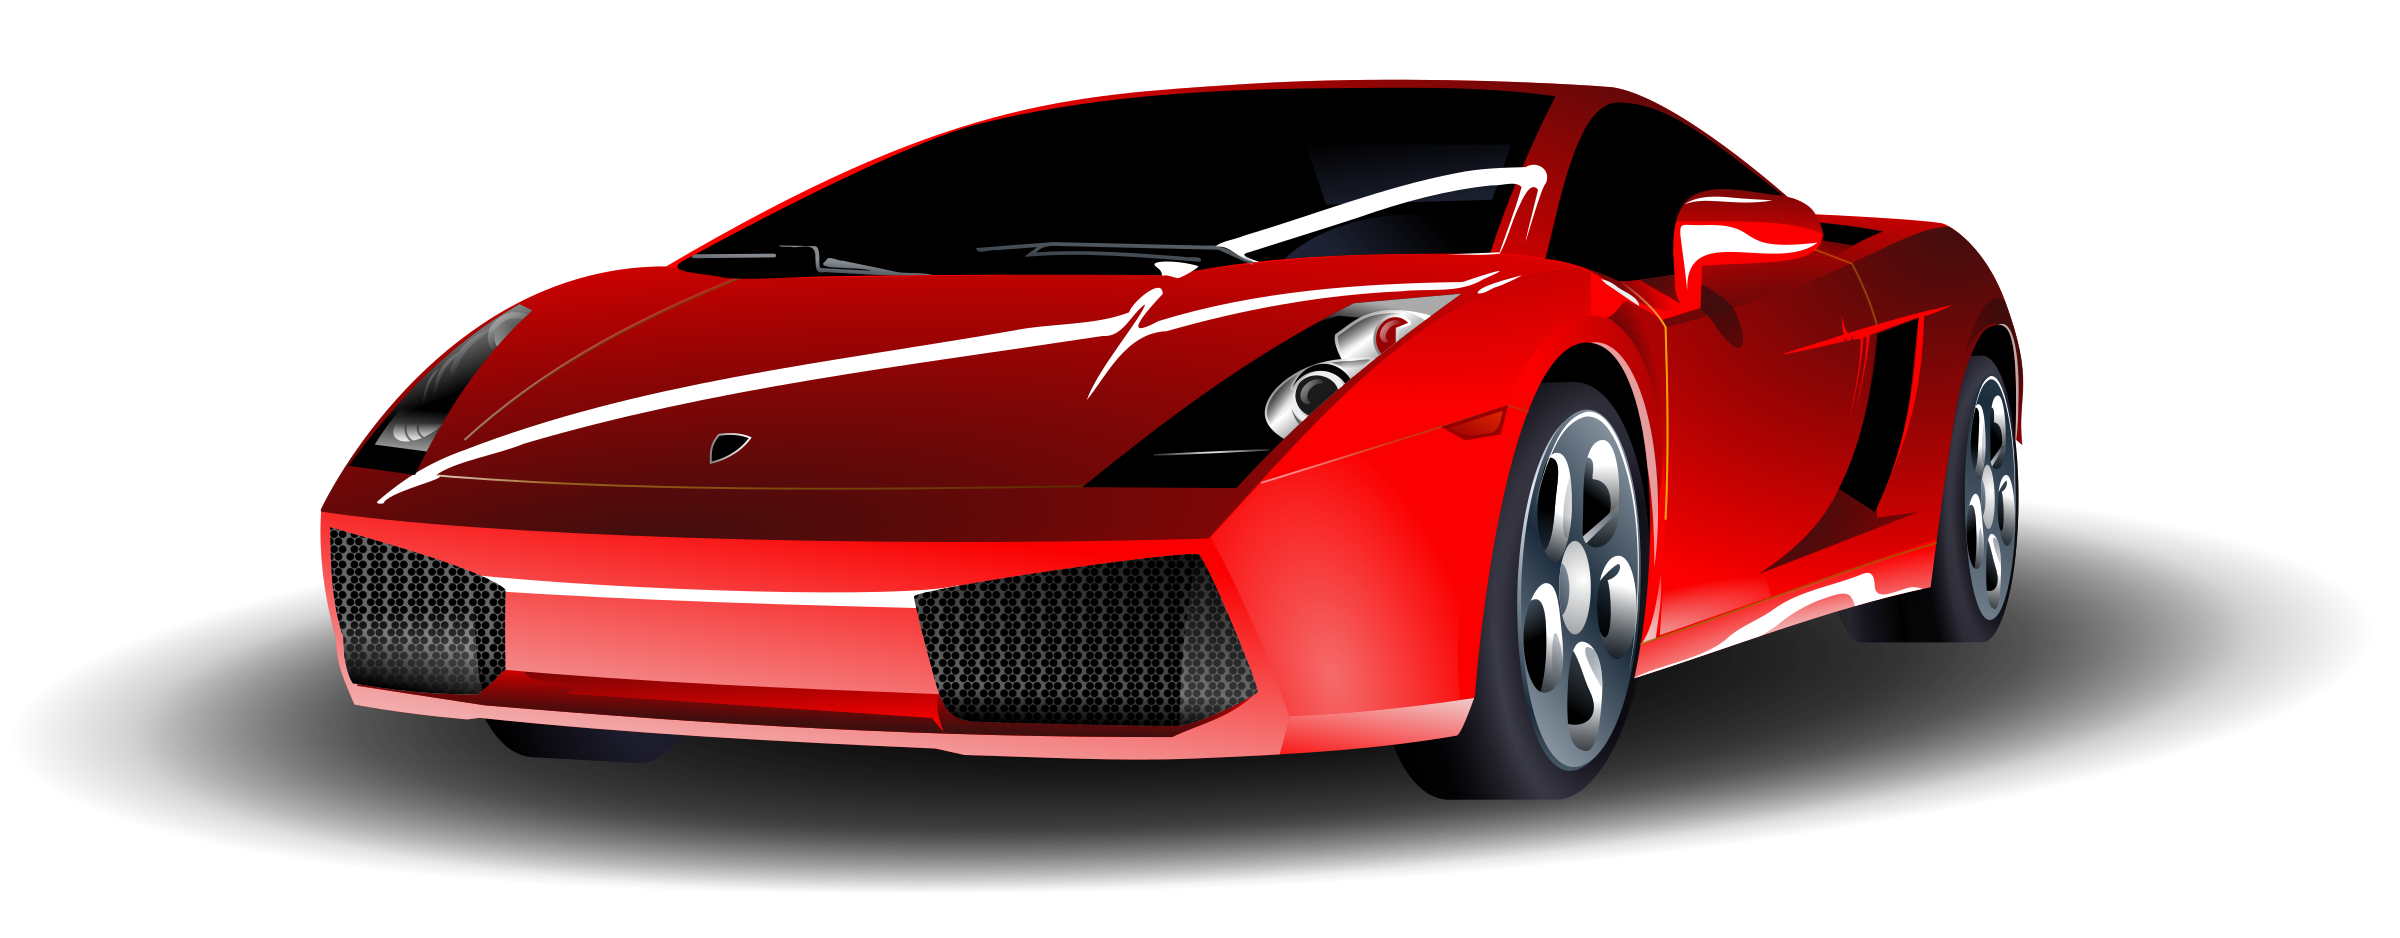 Red Sports Car by ryanlerch